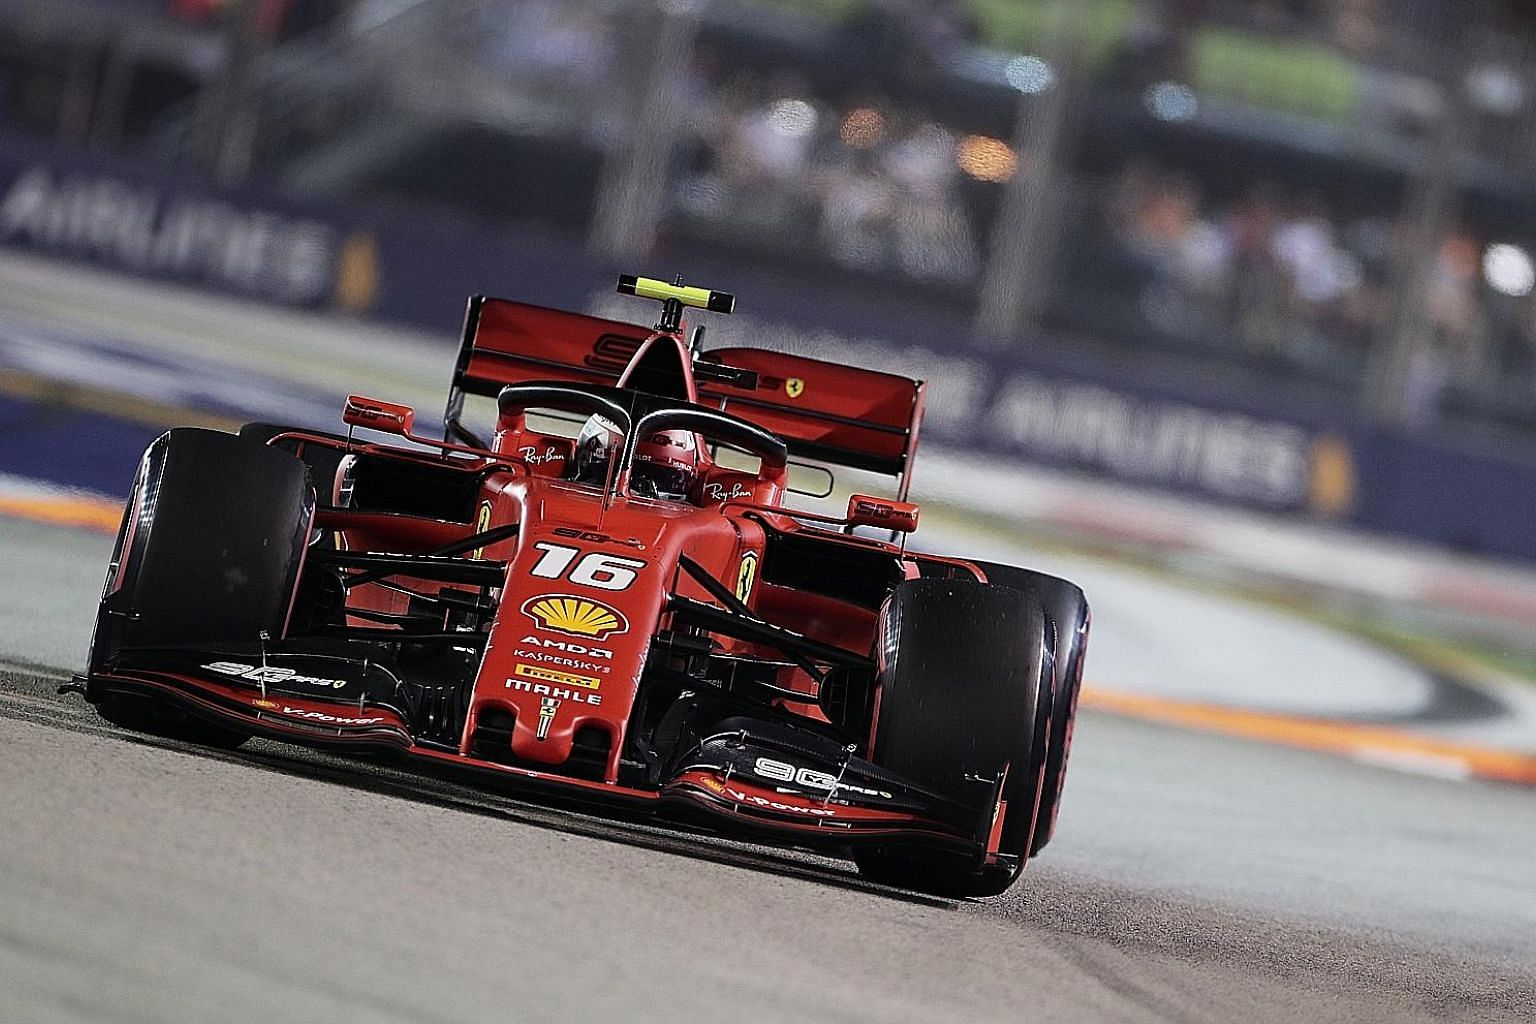 Ferrari driver Charles Leclerc of Monaco rounding Turn 3 during last night's qualifying for the Singapore Airlines Singapore Grand Prix. He set the best time of 1:36.217 despite losing control three times during his flying lap. ST PHOTO: KELVIN CHNG